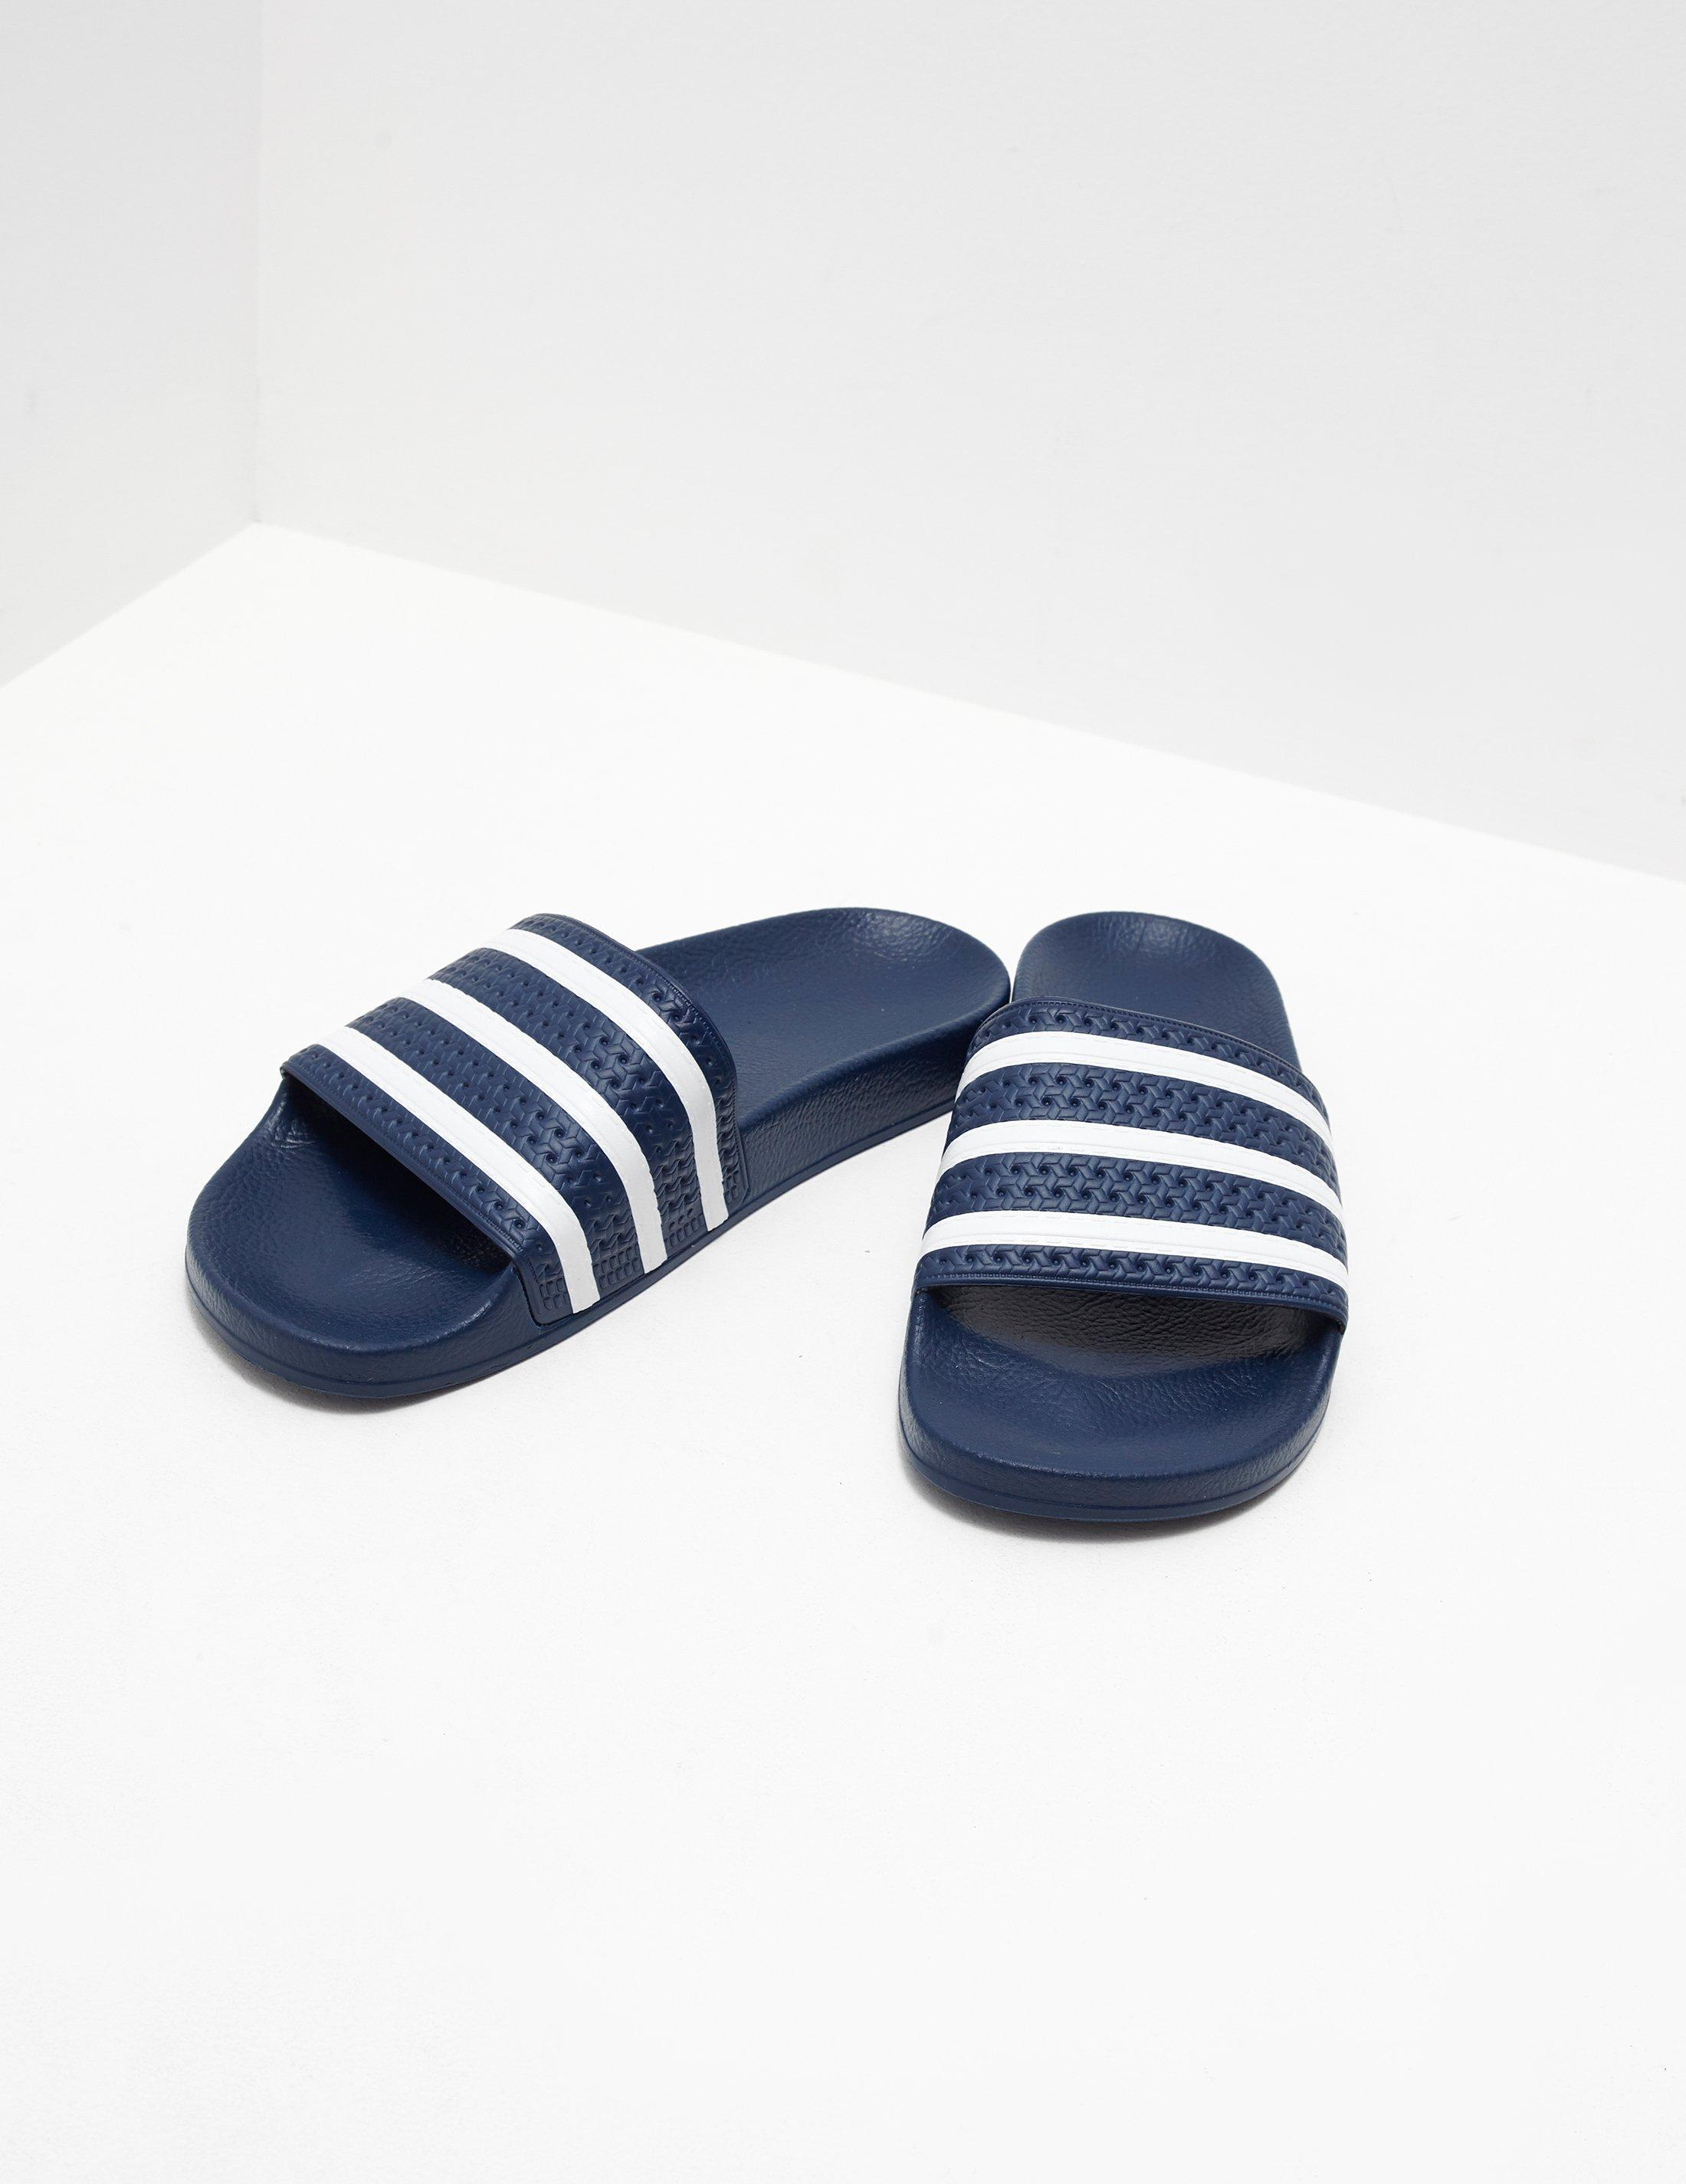 buy popular a7bb4 a92f0 Lyst - adidas Originals Mens Adilette Slides Bluewhite in Bl